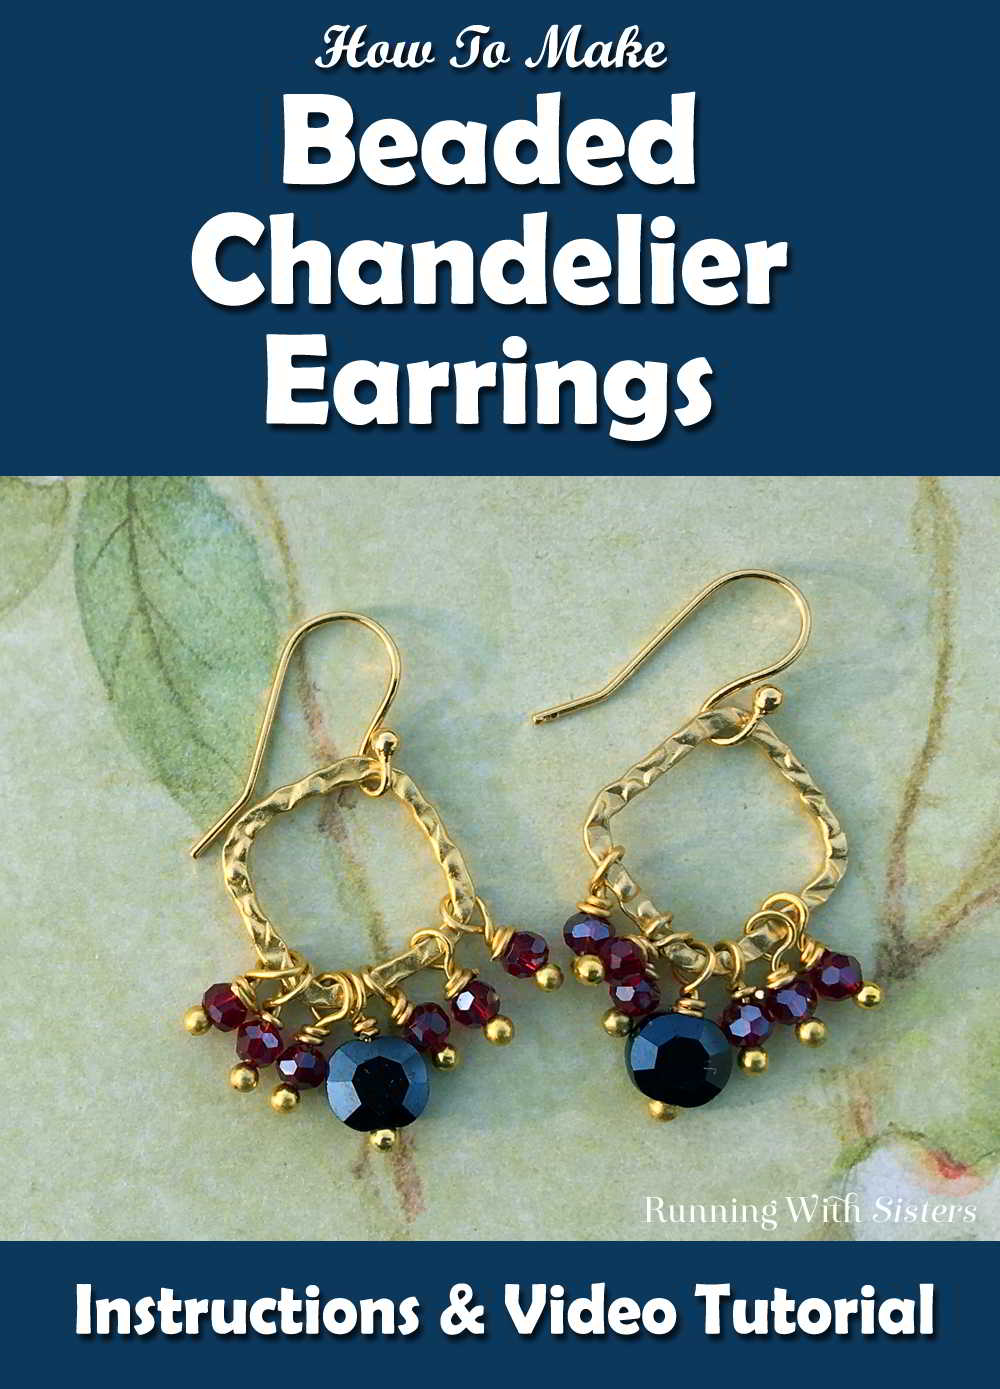 How to make beaded chandelier earrings running with sisters learn to make these pretty beaded chandelier earrings in this video tutorial well mozeypictures Choice Image